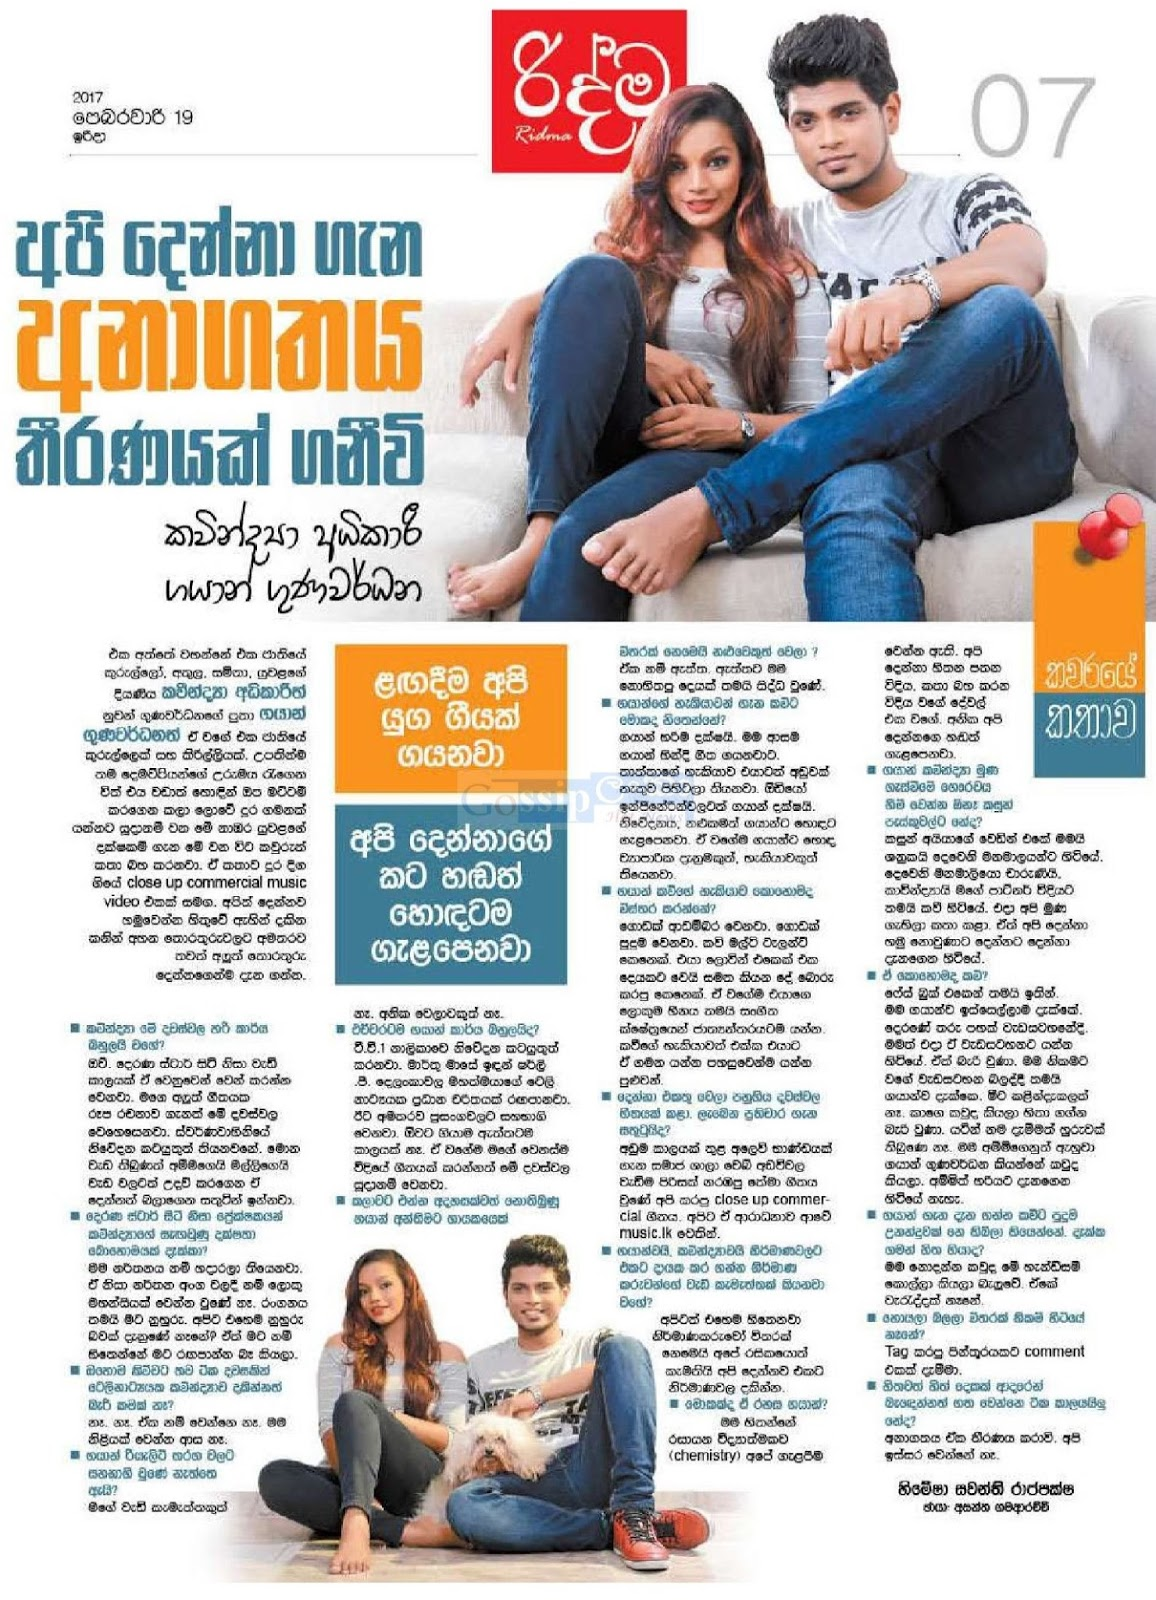 Gossip Chat With Kavindya Adikari